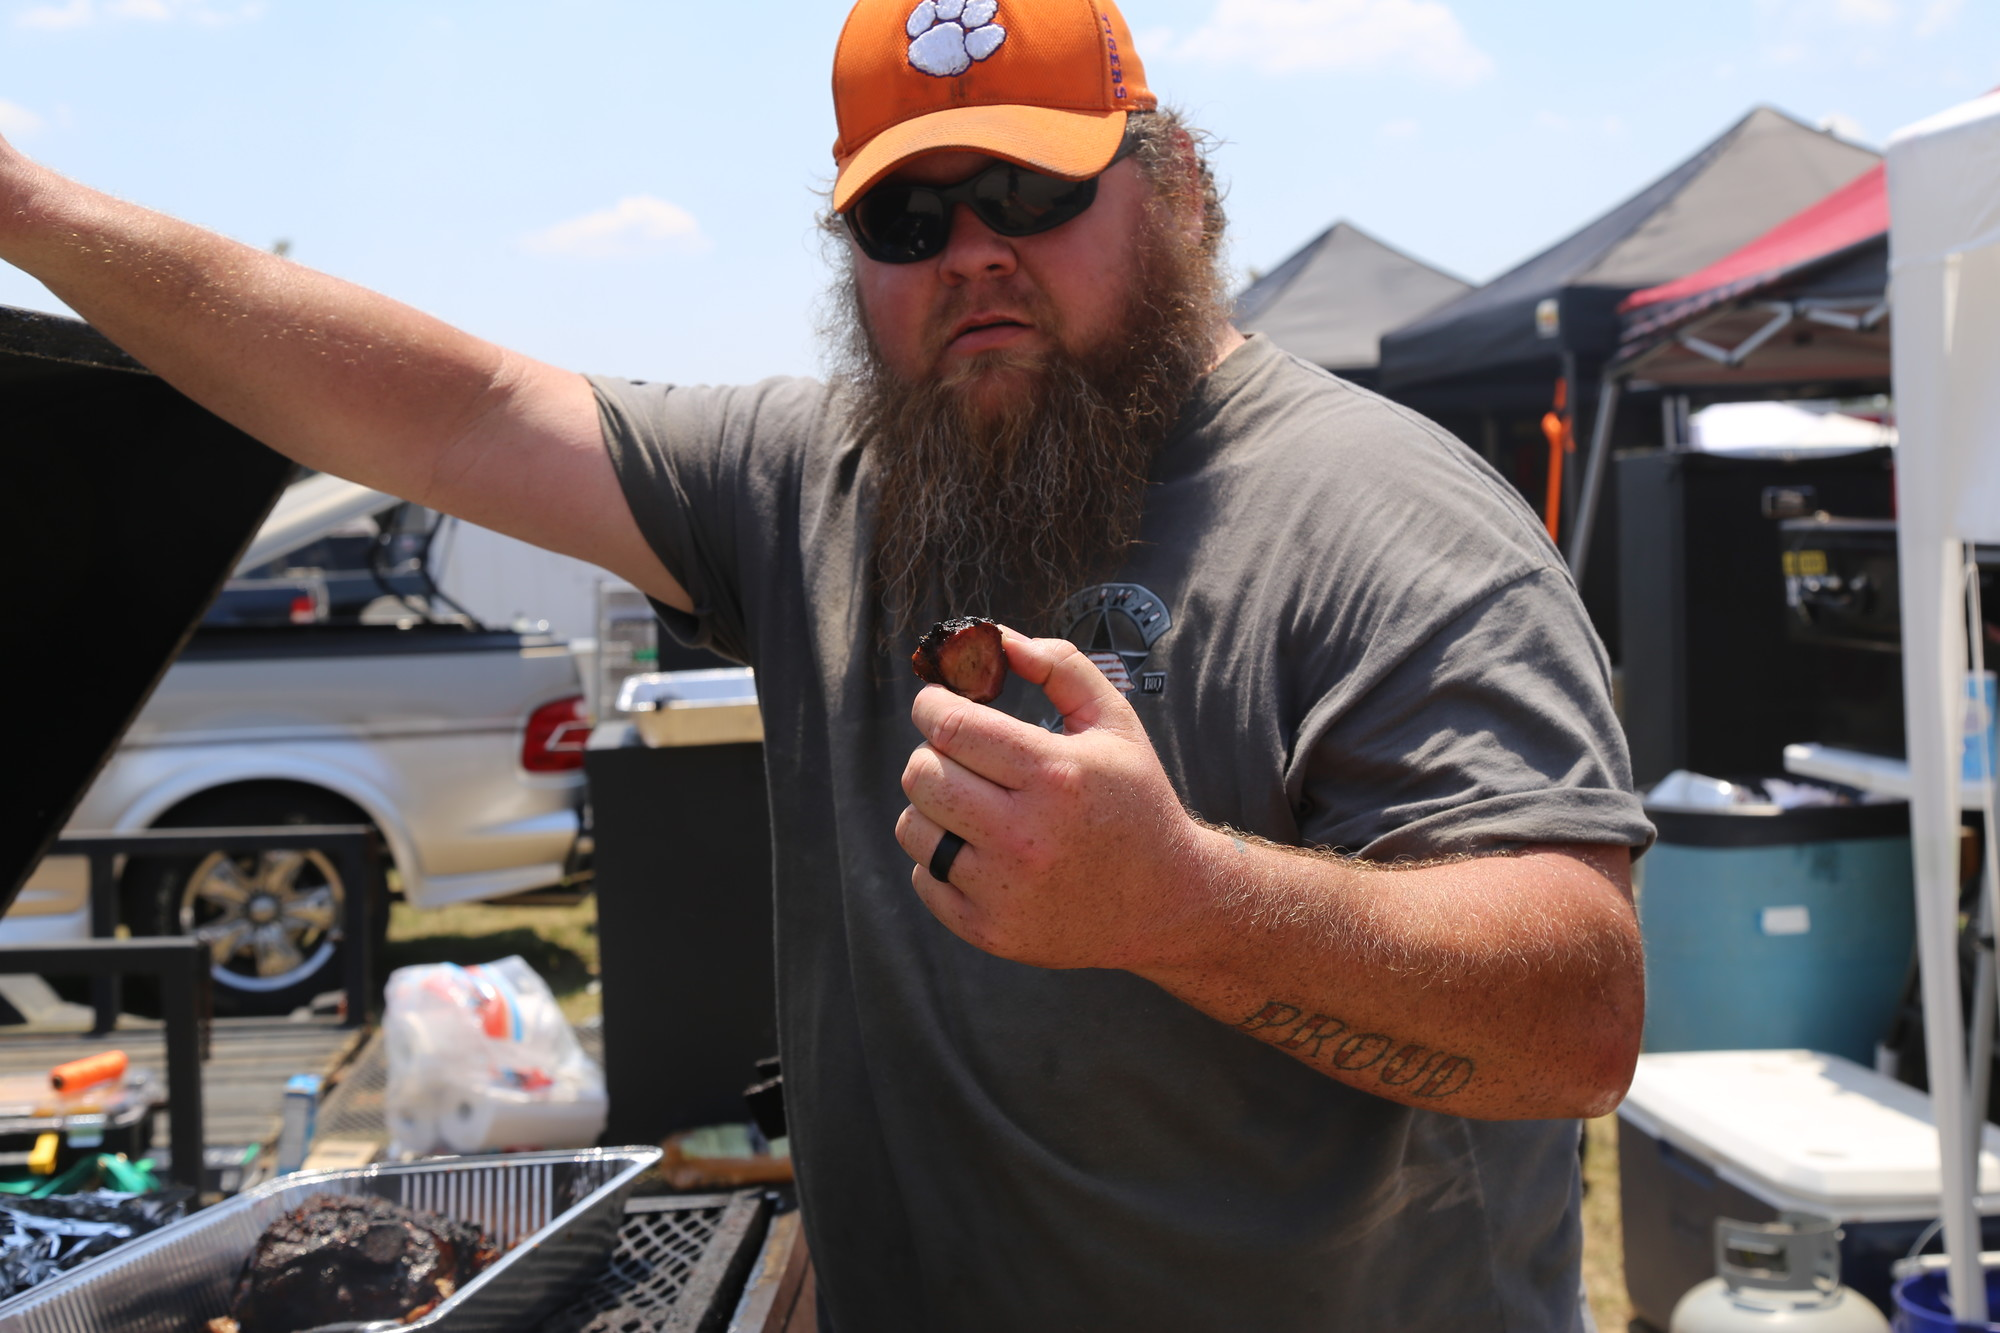 Chad Porter shows off his American Proud BBQ entry for the cook-off on Saturday at the Sumter County Fairgrounds.